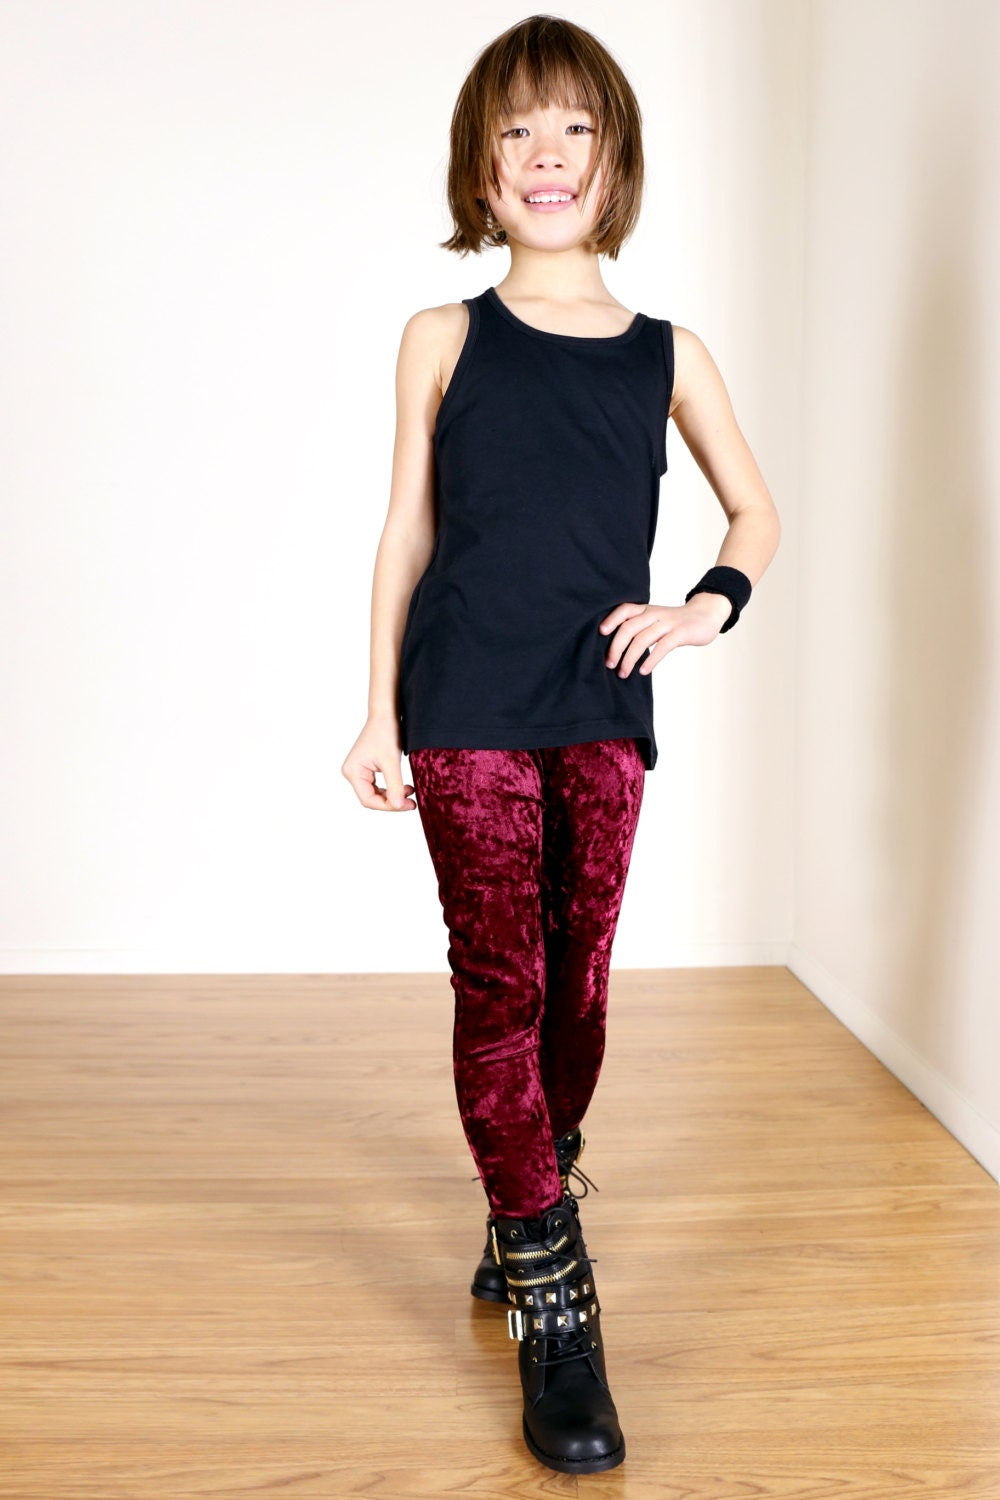 Girls/Kids Crushed Velvet Leggings for Riot Grrrls Little Punks u0026 Goth Kids